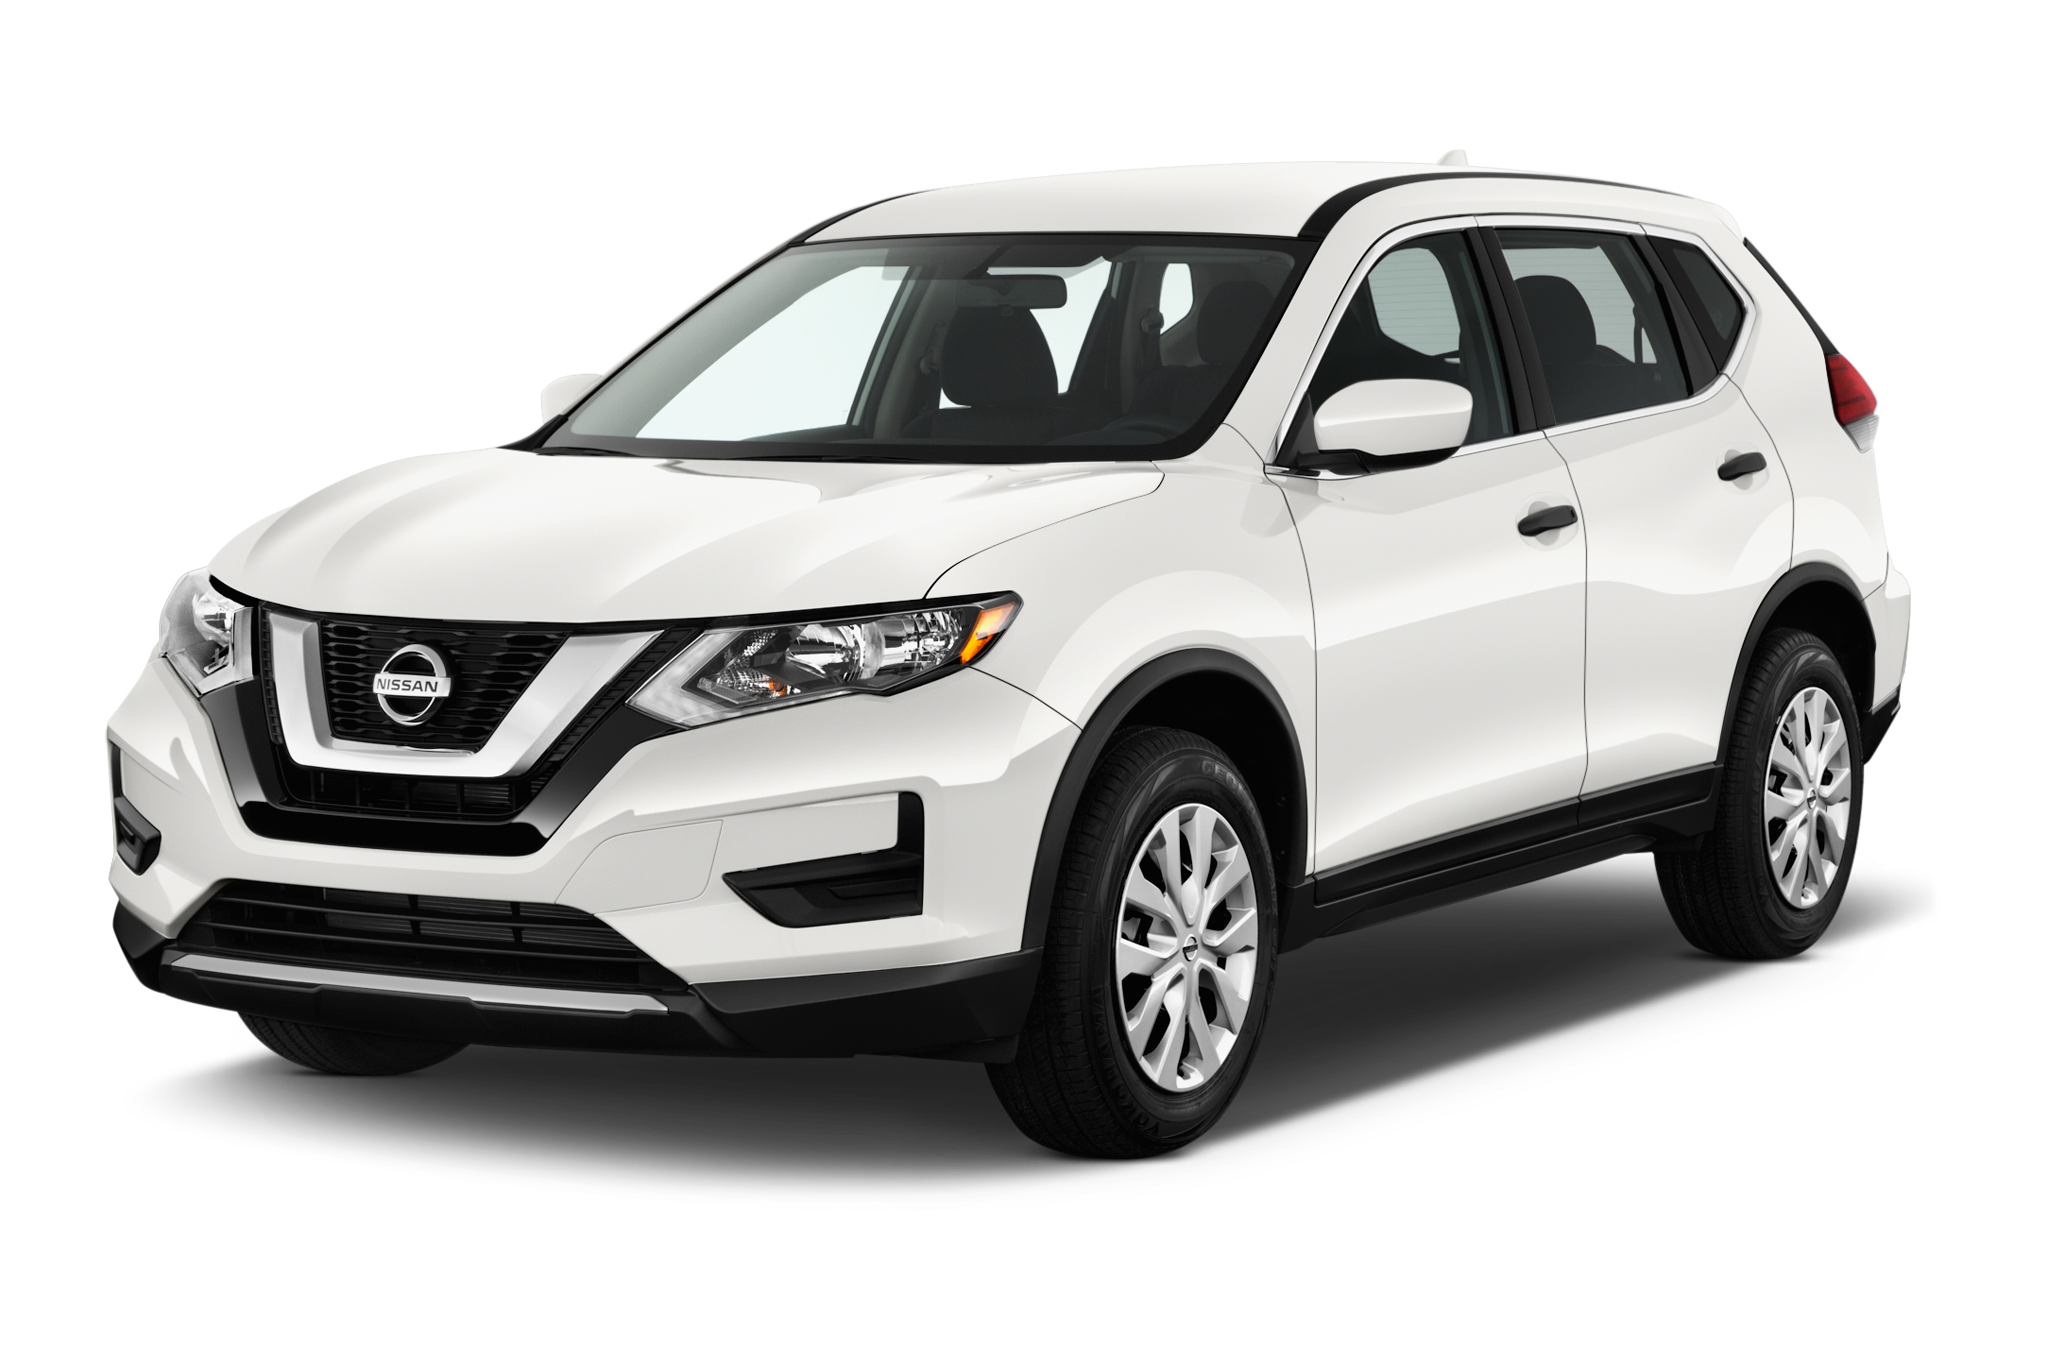 2017 Nissan Armada Configurations >> 2018 Nissan Rogue Hybrid Gets Small Price Hike and an Extra USB Port | Automobile Magazine